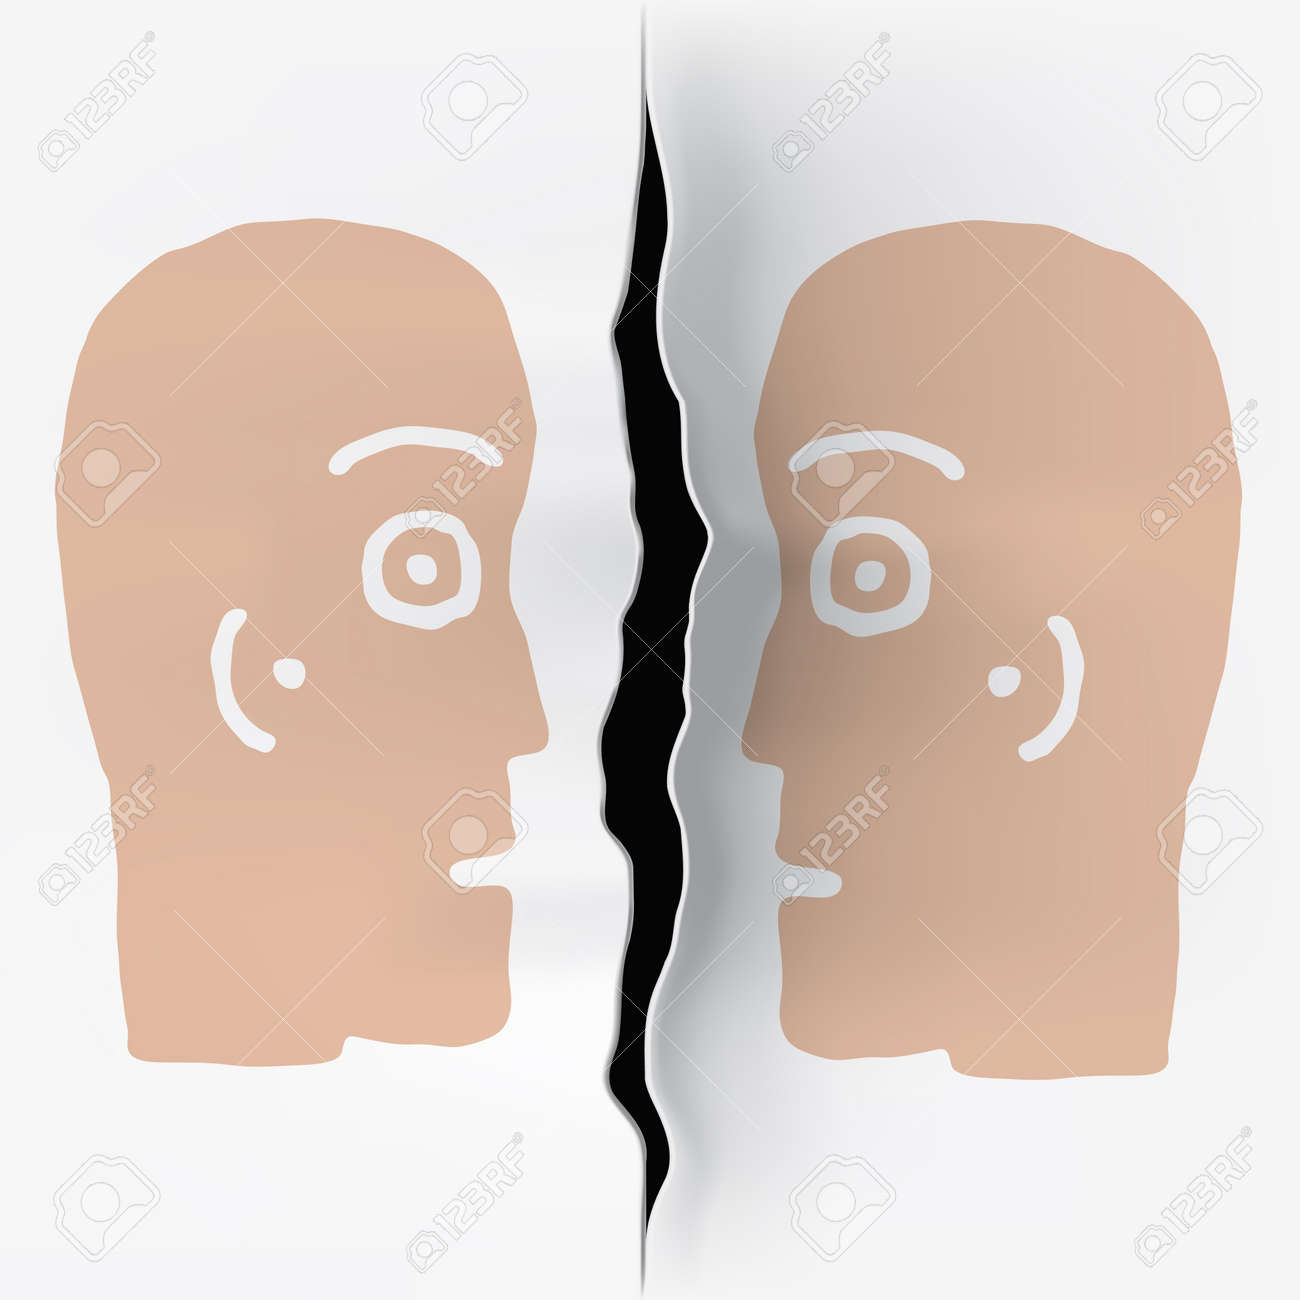 two heads  separated Stock Photo - 10681231